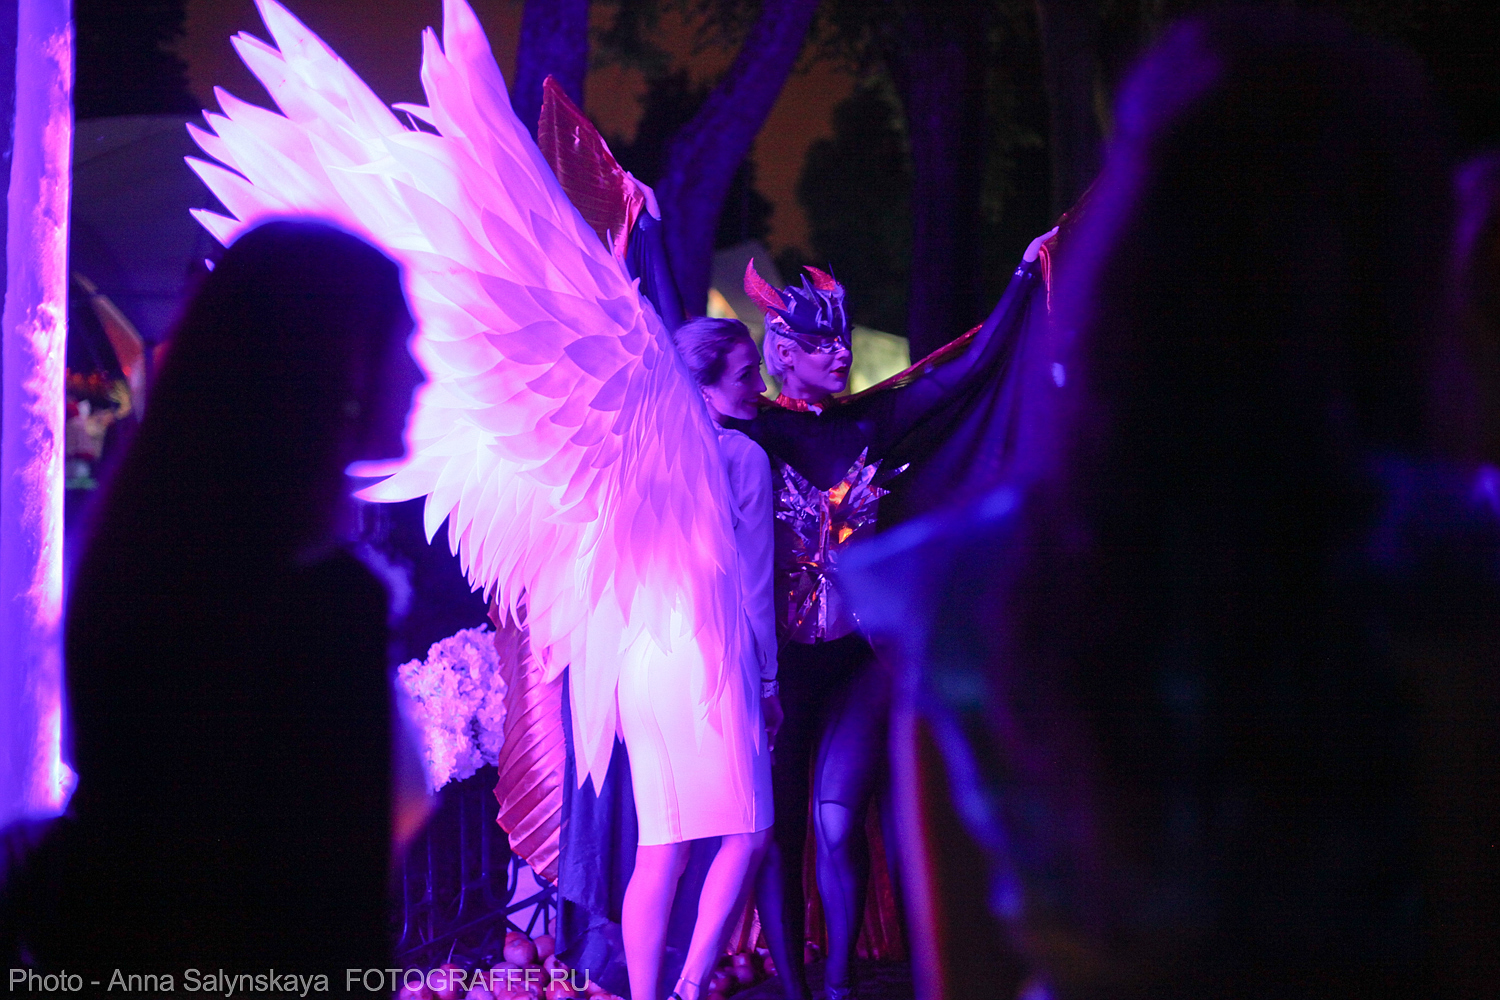 IMG_5665_AnnaSalynskaya_1 - Midsummer Night's Dream 2017